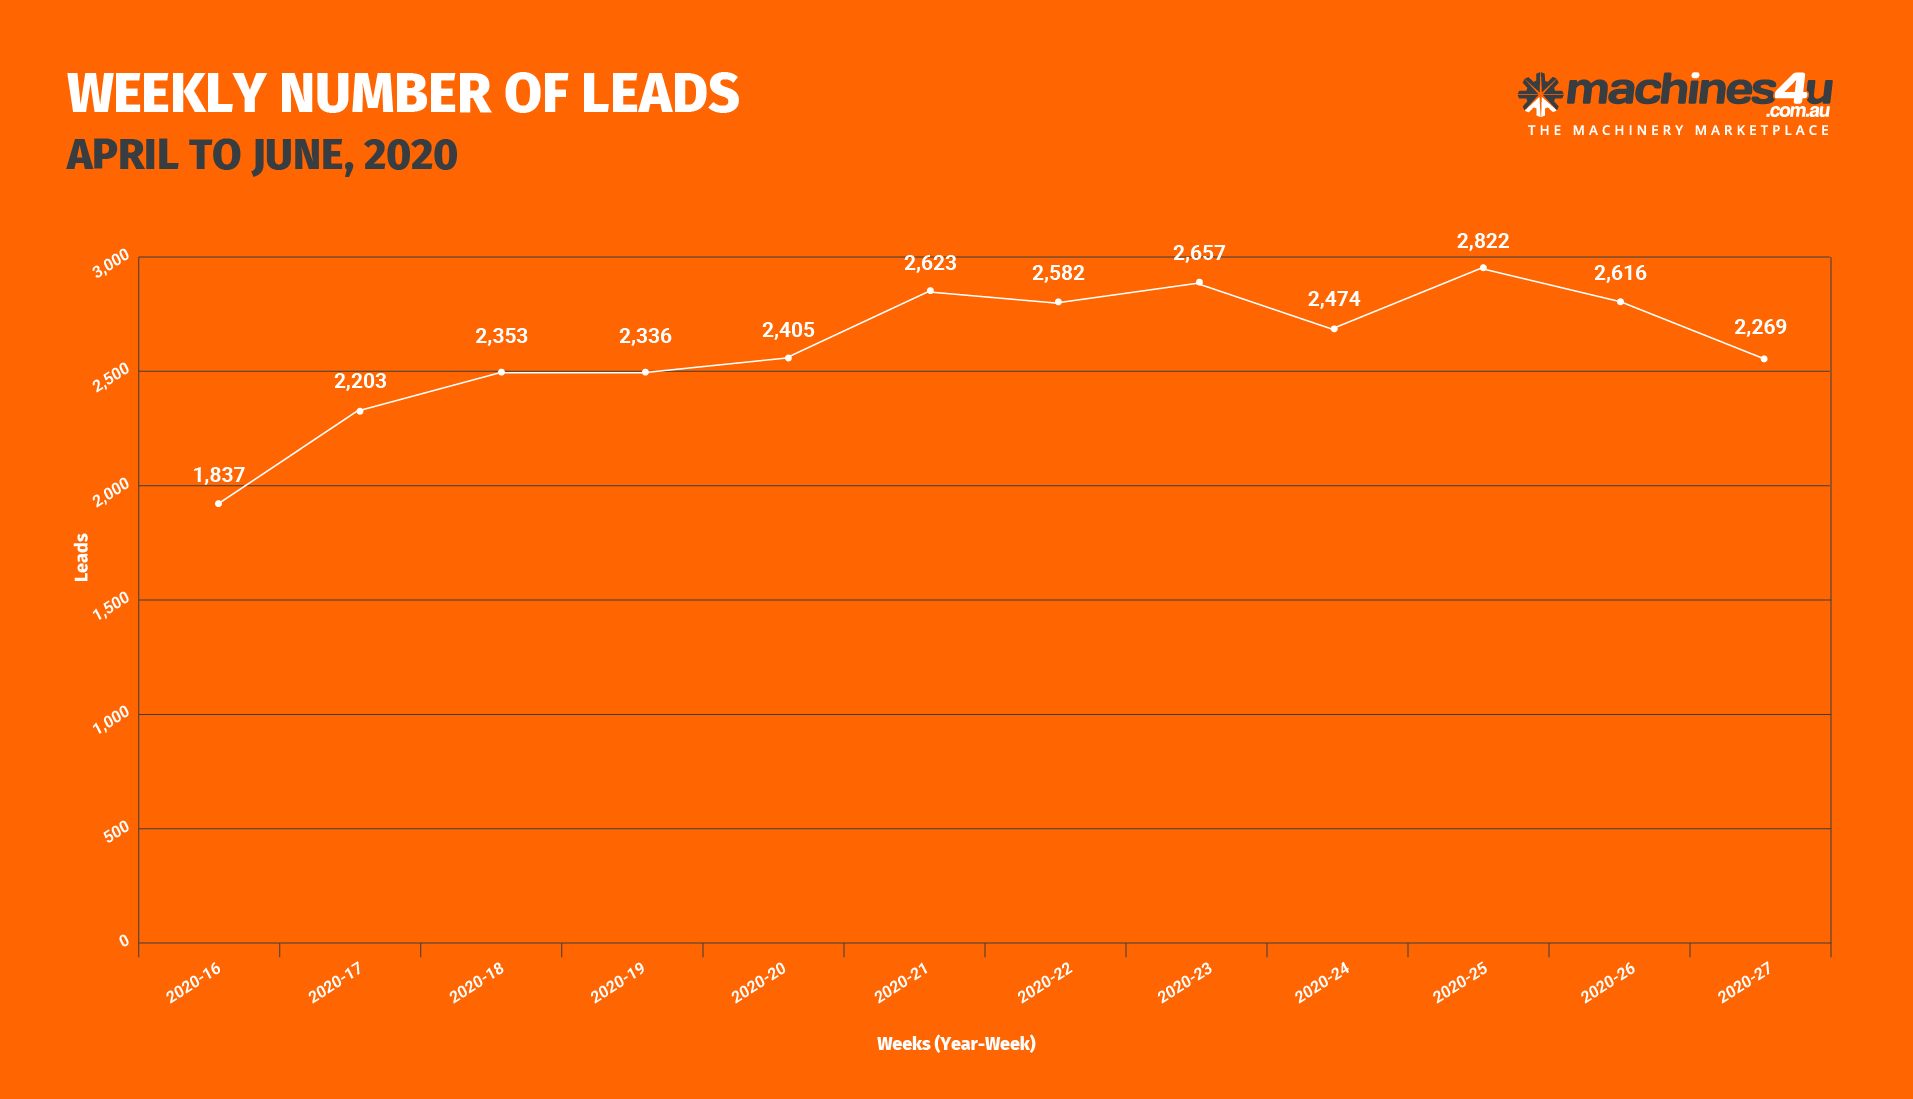 BOR Graphs_WEEKLY NUMBER OF LEADS_9th July, 2020-01